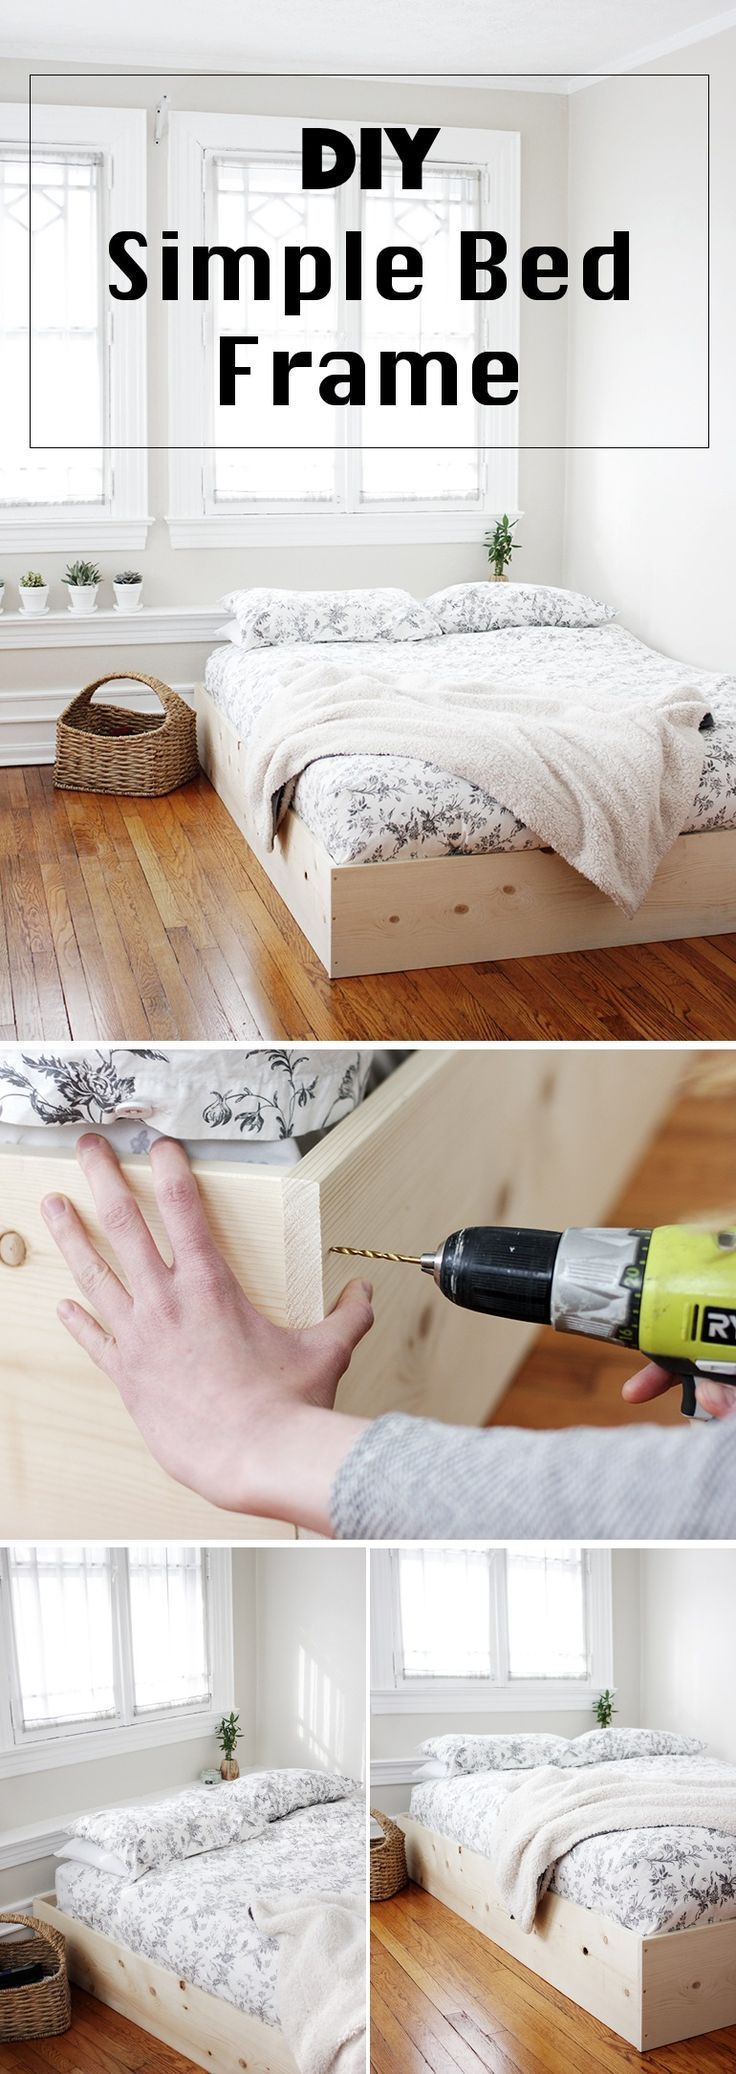 25 Easy DIY Bed Frame Projects to Upgrade Your Bedroom